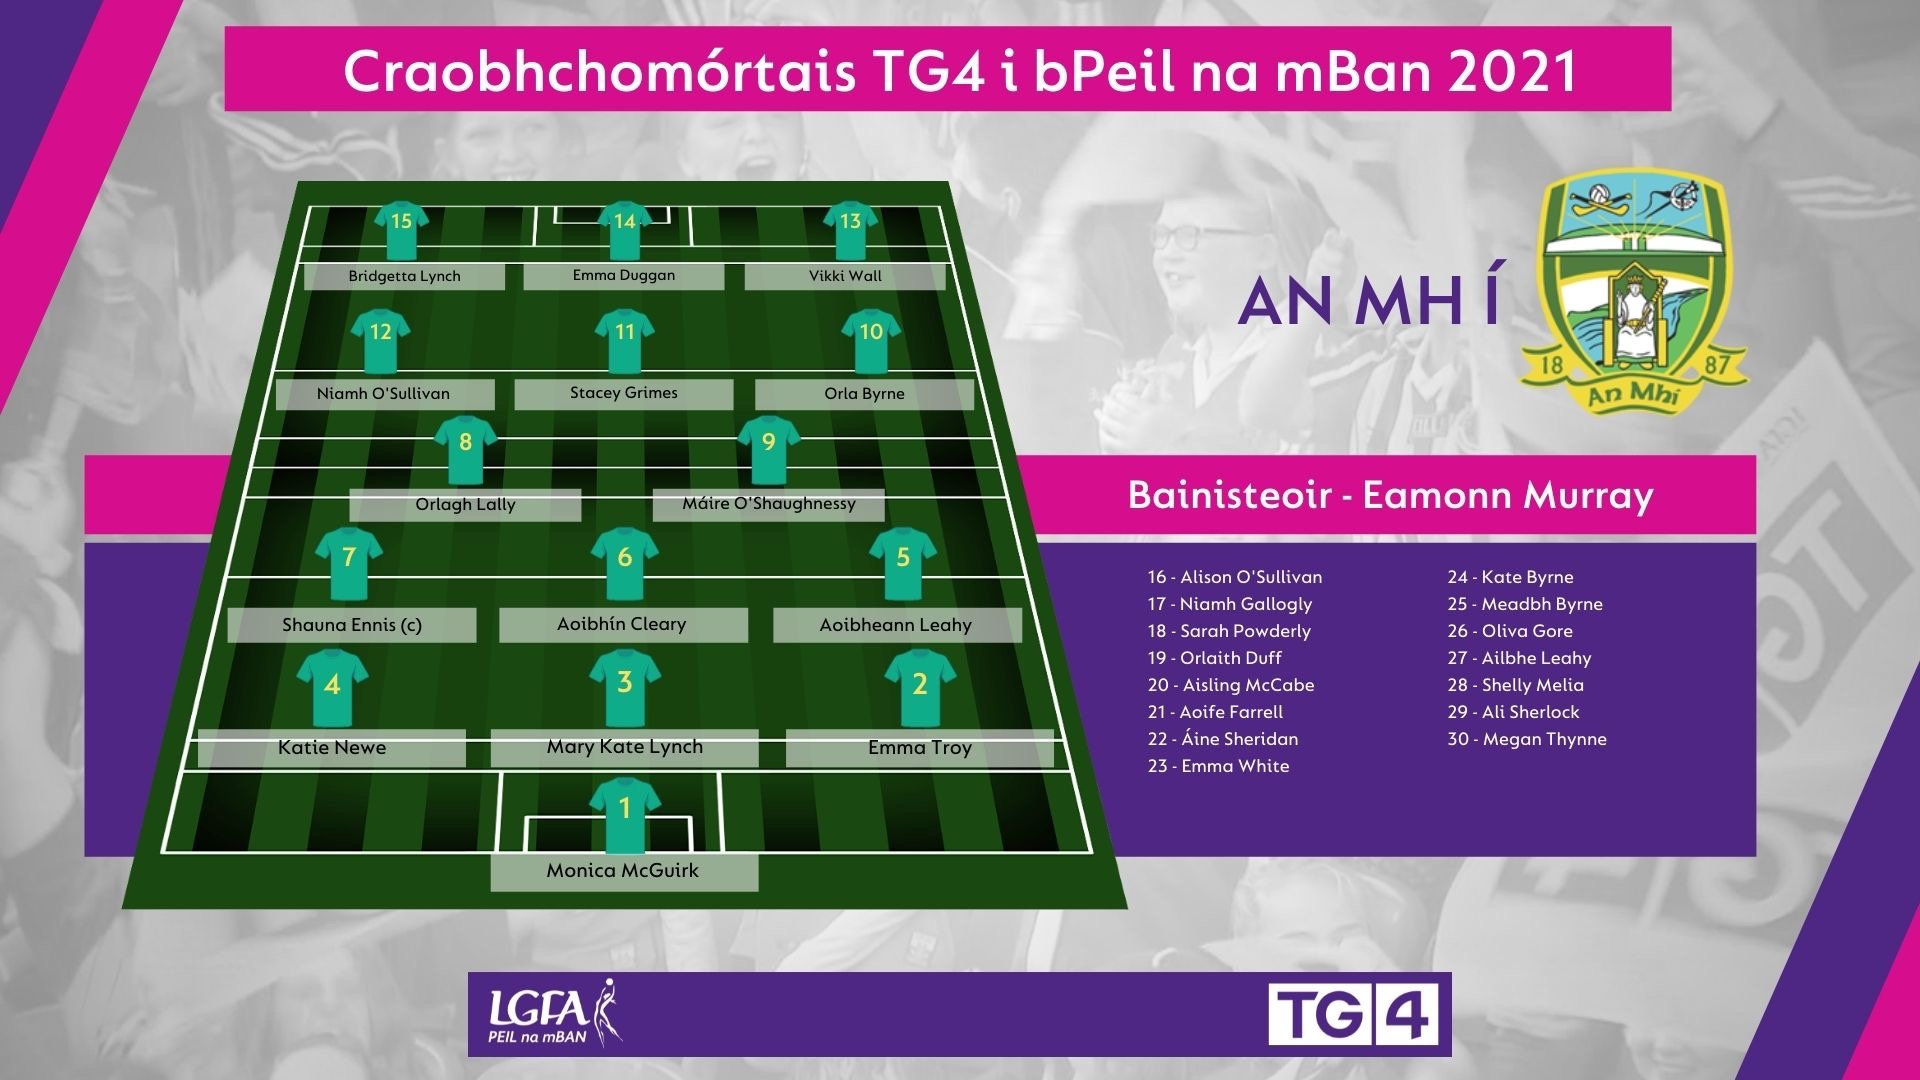 Image of Meath team selection in the match programme for the 2021 TG4 All Ireland Ladies Football Championship finals on Sunday.